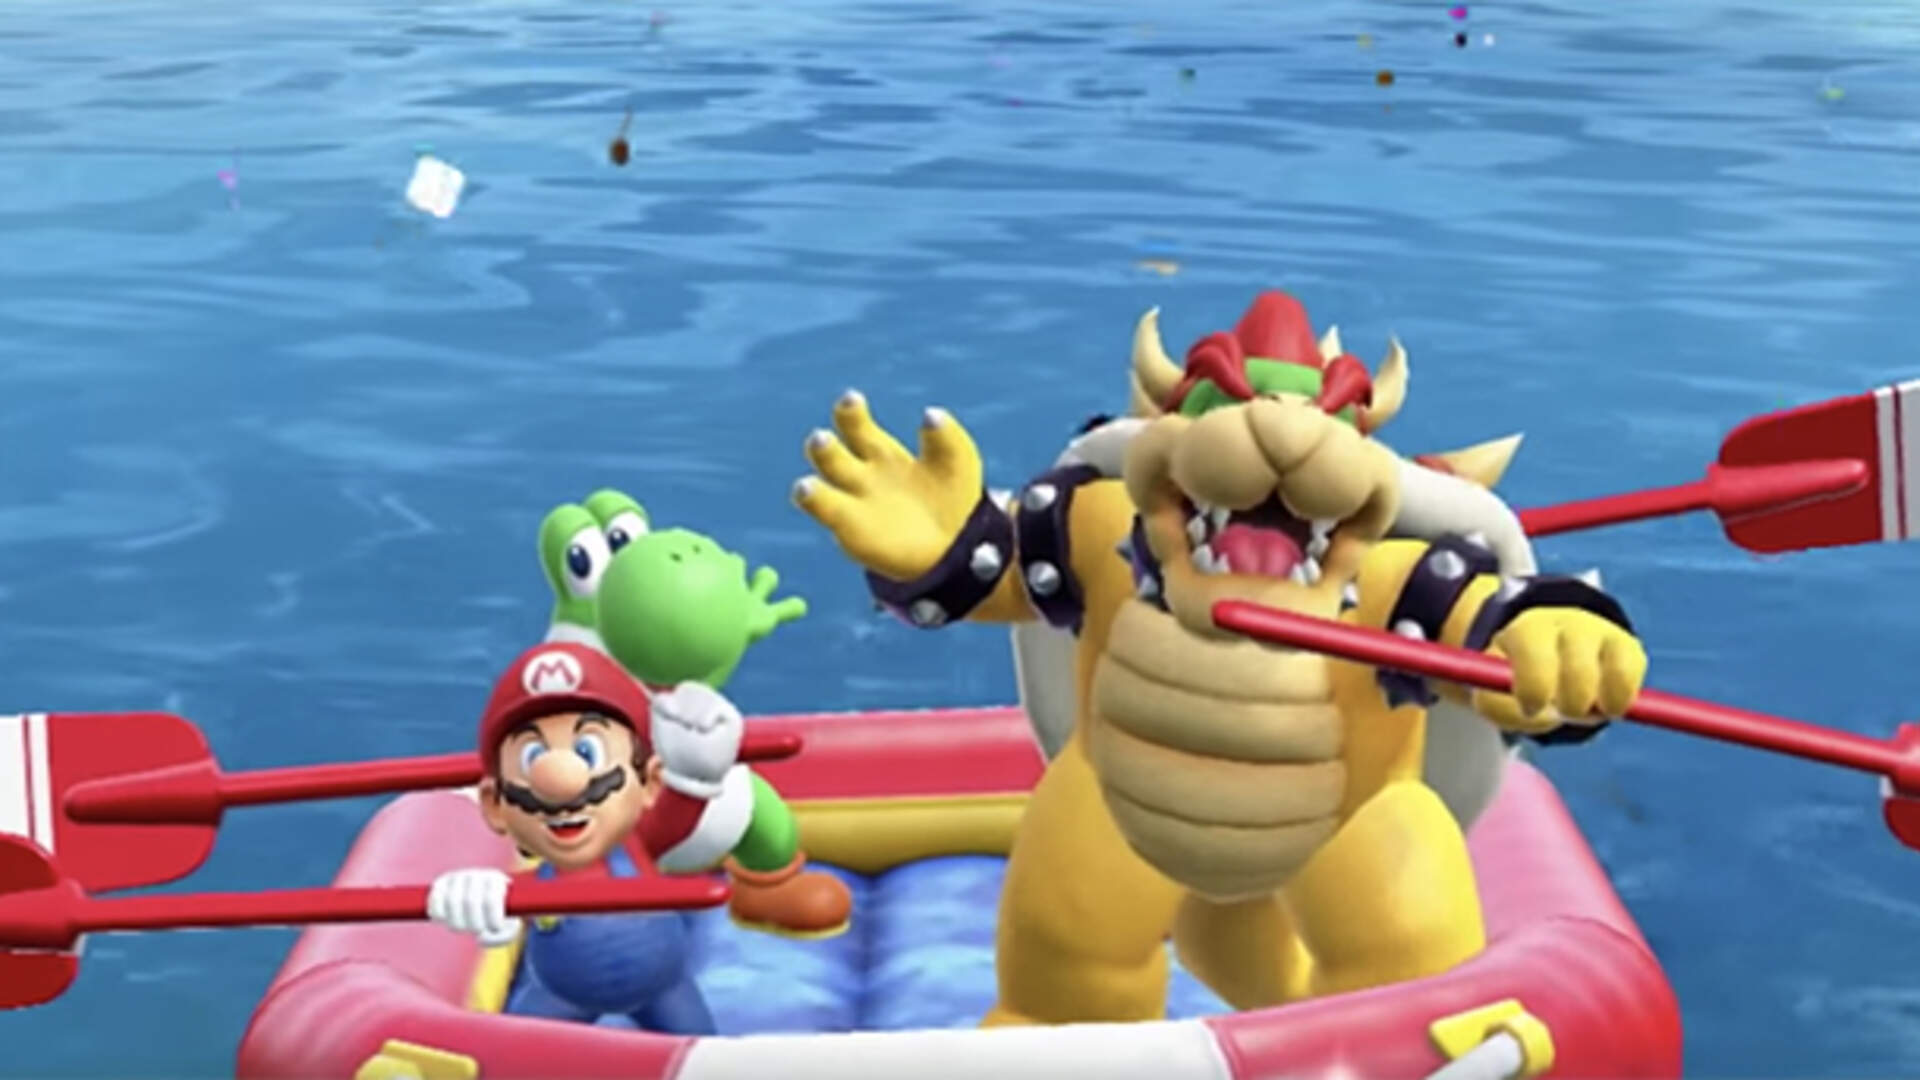 Super Mario Party's River Survival Mode is More About Mending Friendships Than Breaking Them